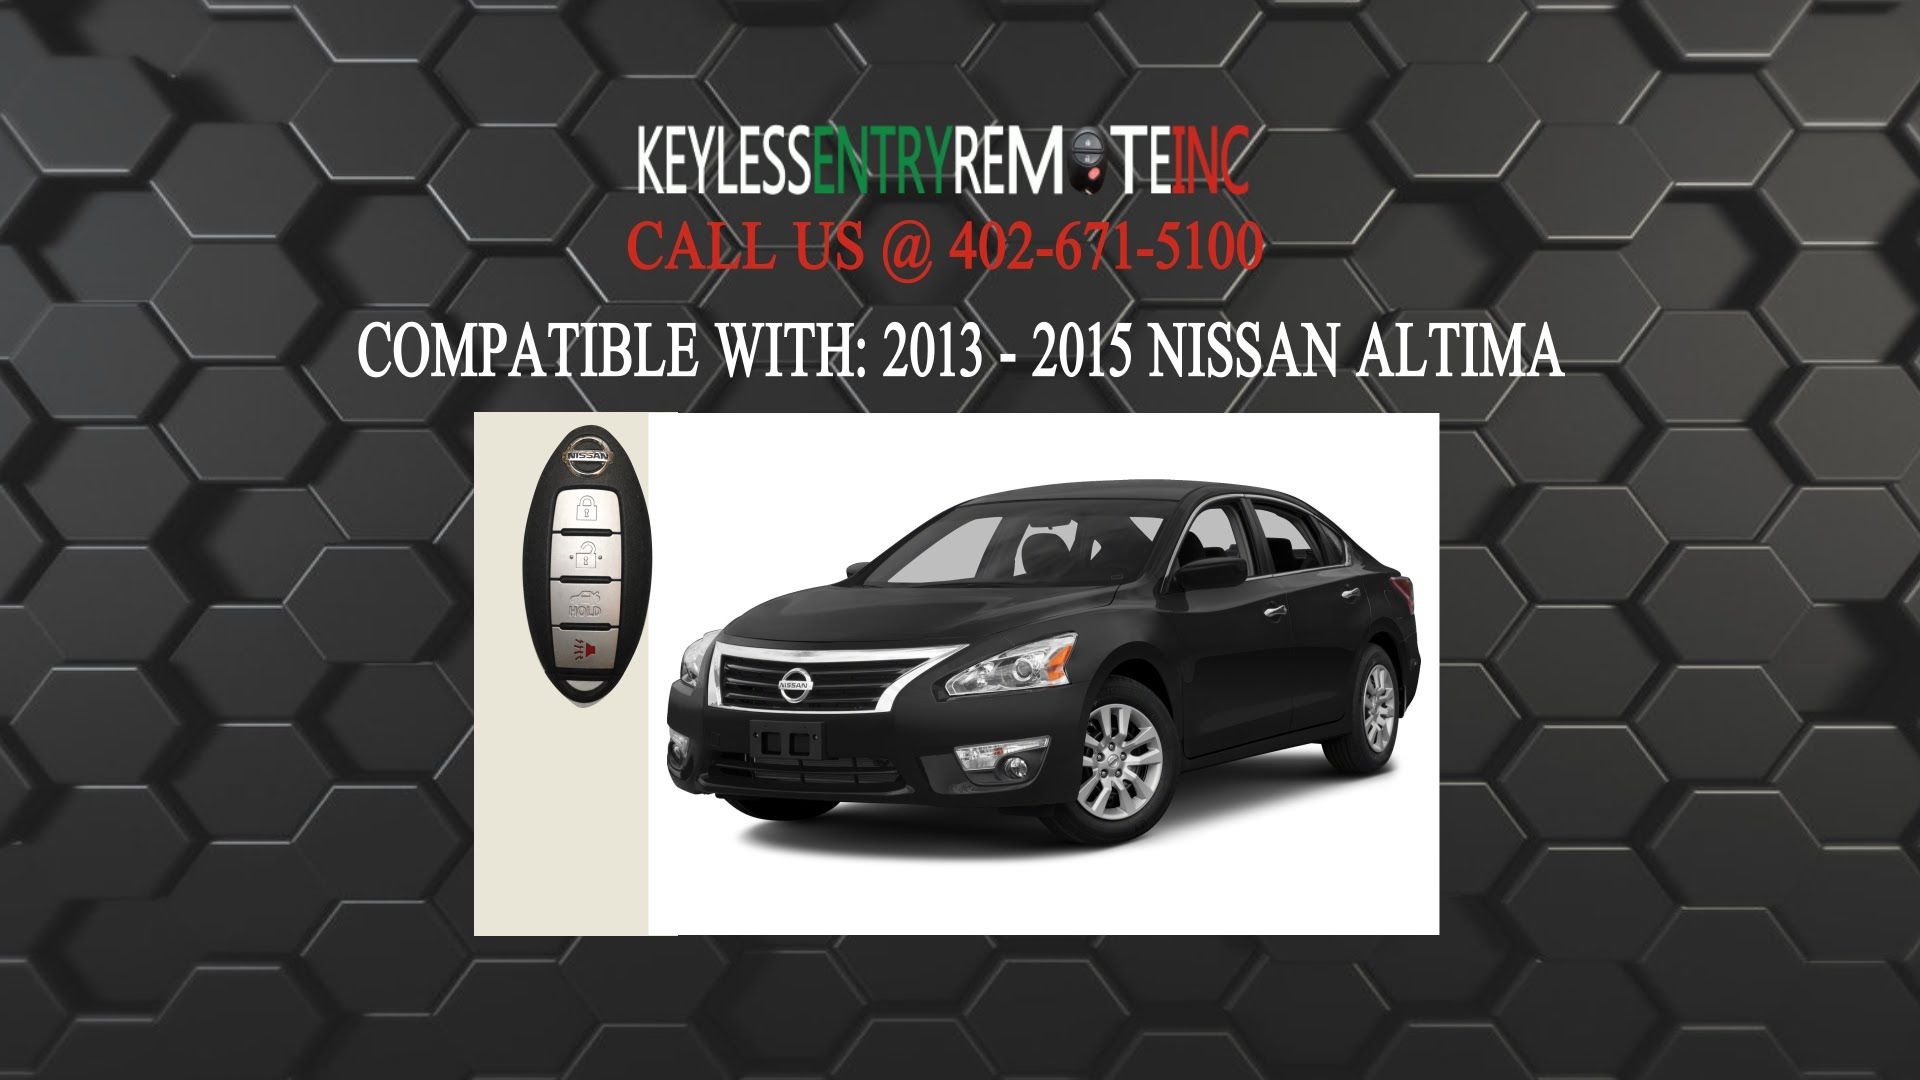 How To Replace Nissan Altima Key Fob Battery 2013 2015 Nissan Altima Altima Nissan